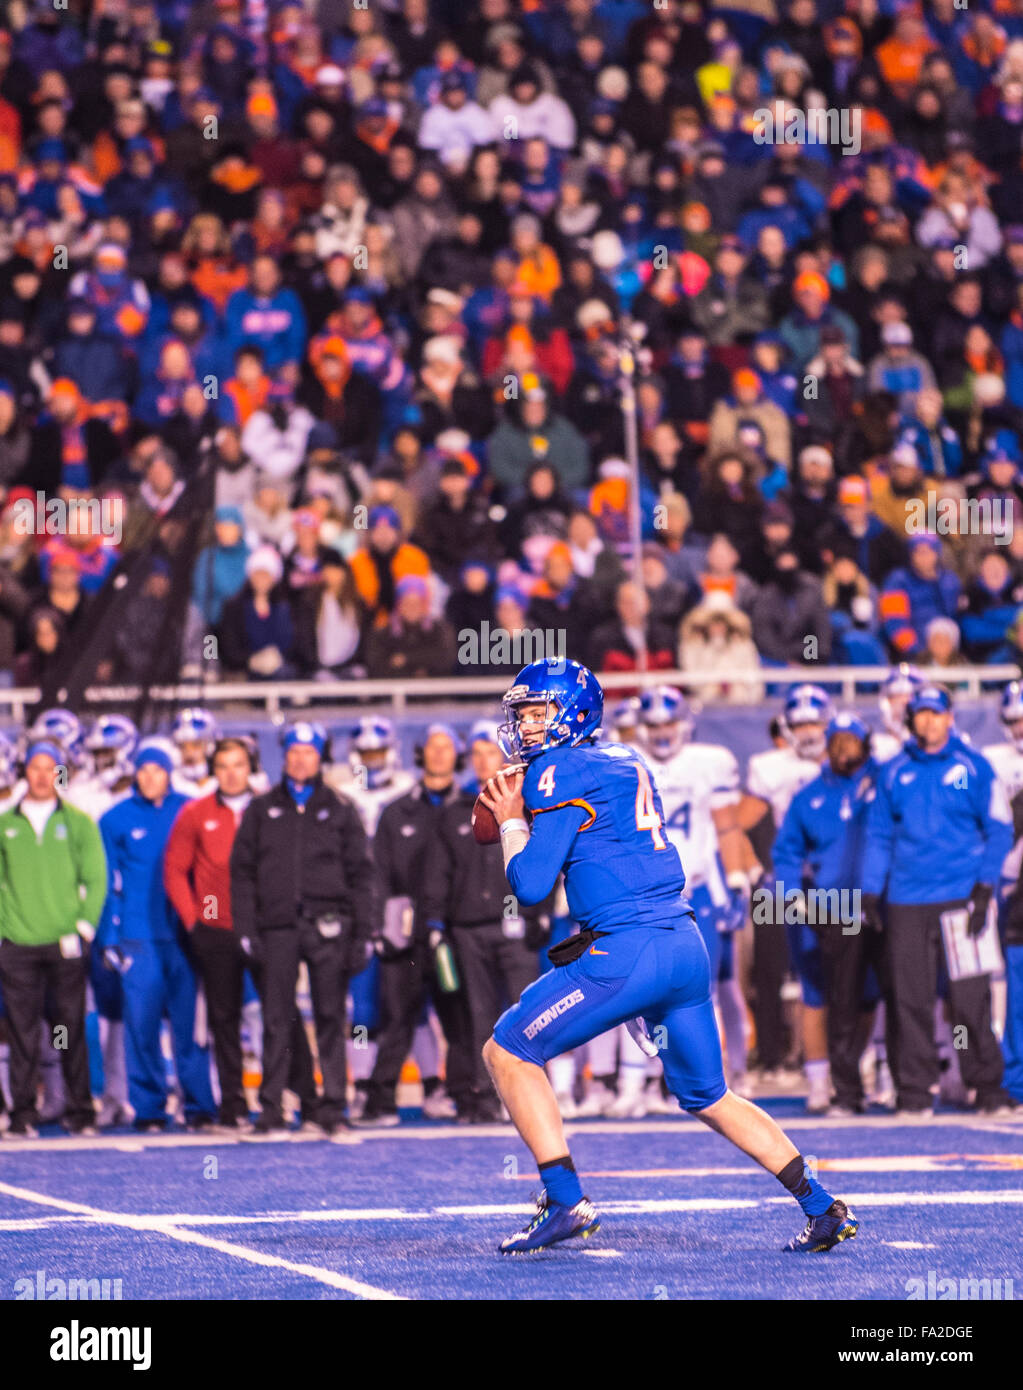 FOOTBALL, Boise State Football Quarterback Brett Rypien passing in game against Air Force in Albertson's stadium, - Stock Image